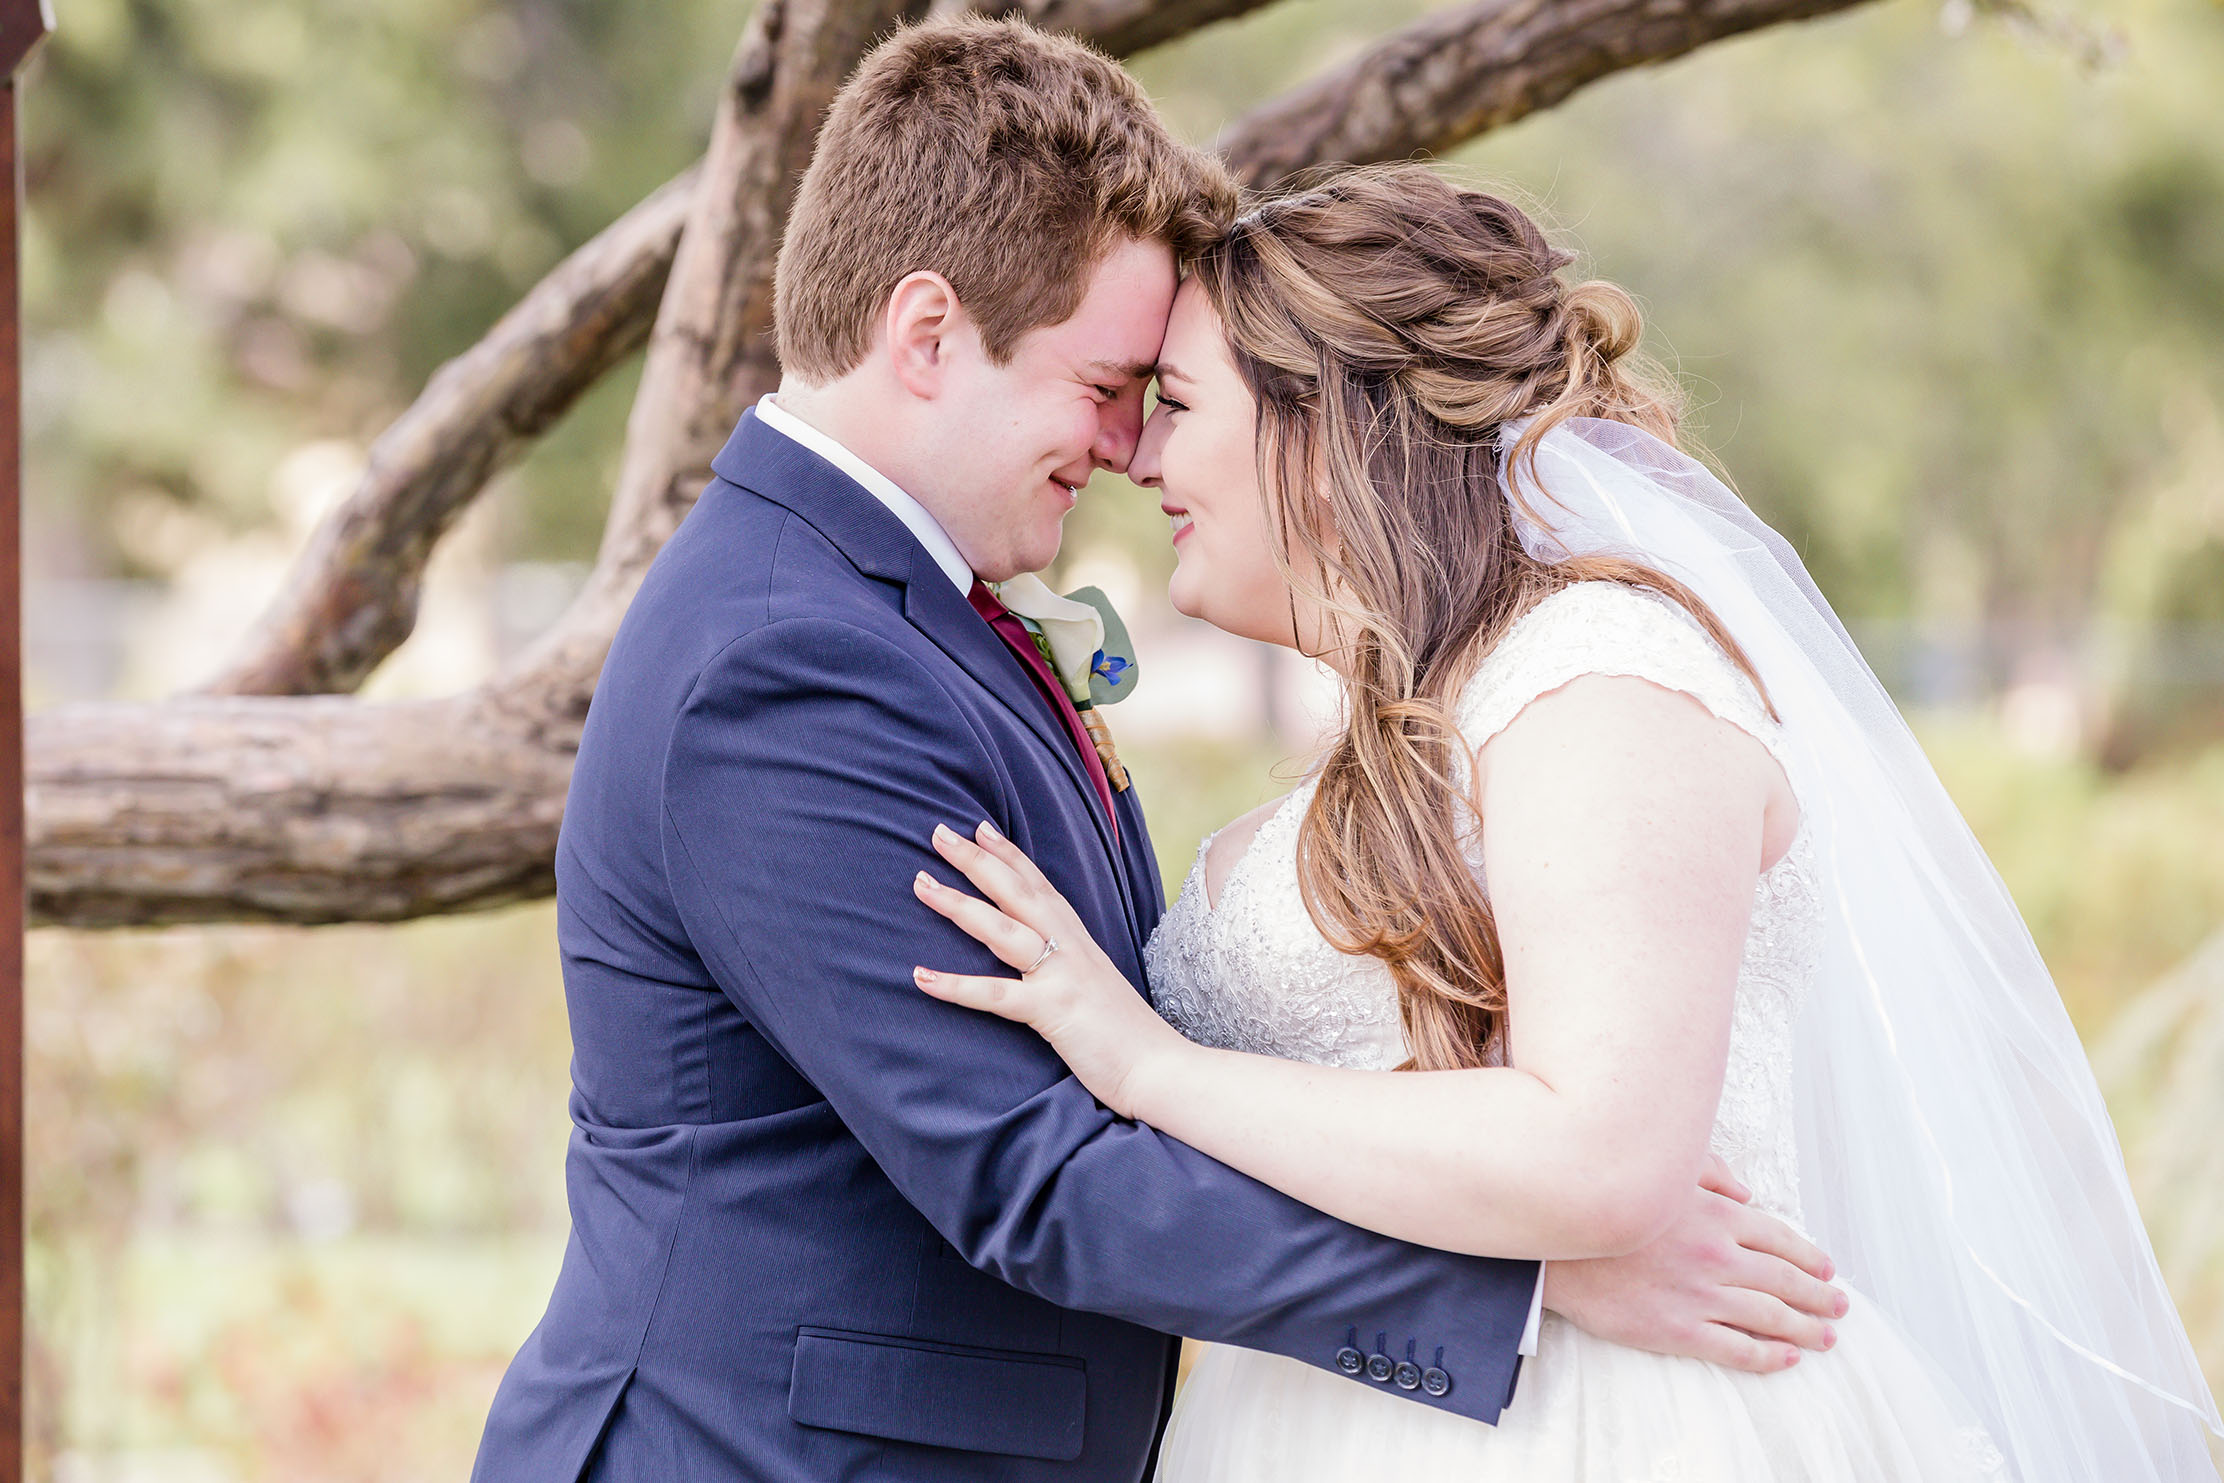 Spring Wedding at Idlewild Park in downtown Reno by Reno Tahoe Photographer